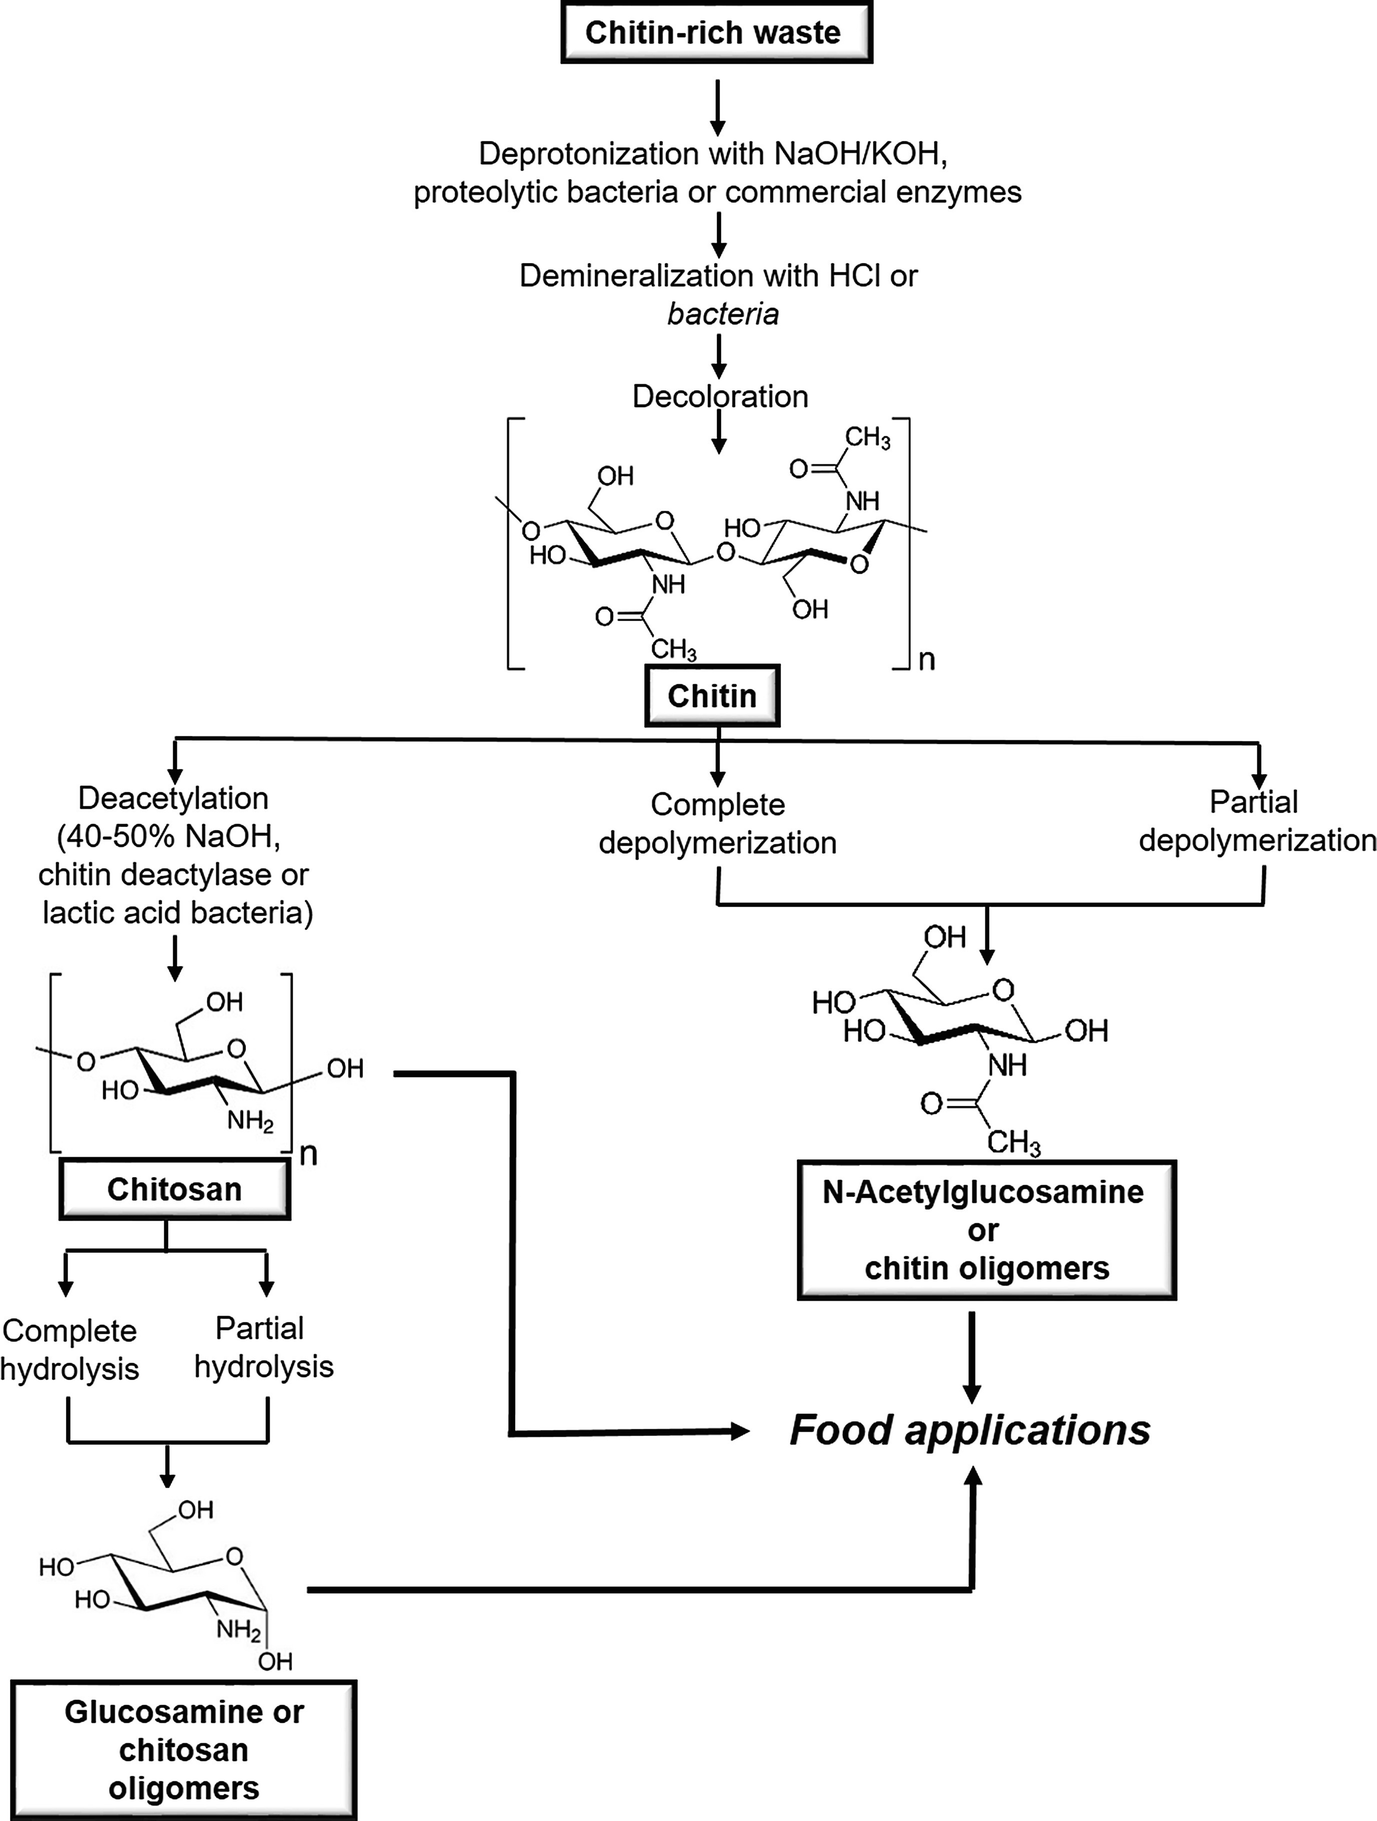 Nutritional and Additive Uses of Chitin and Chitosan in the